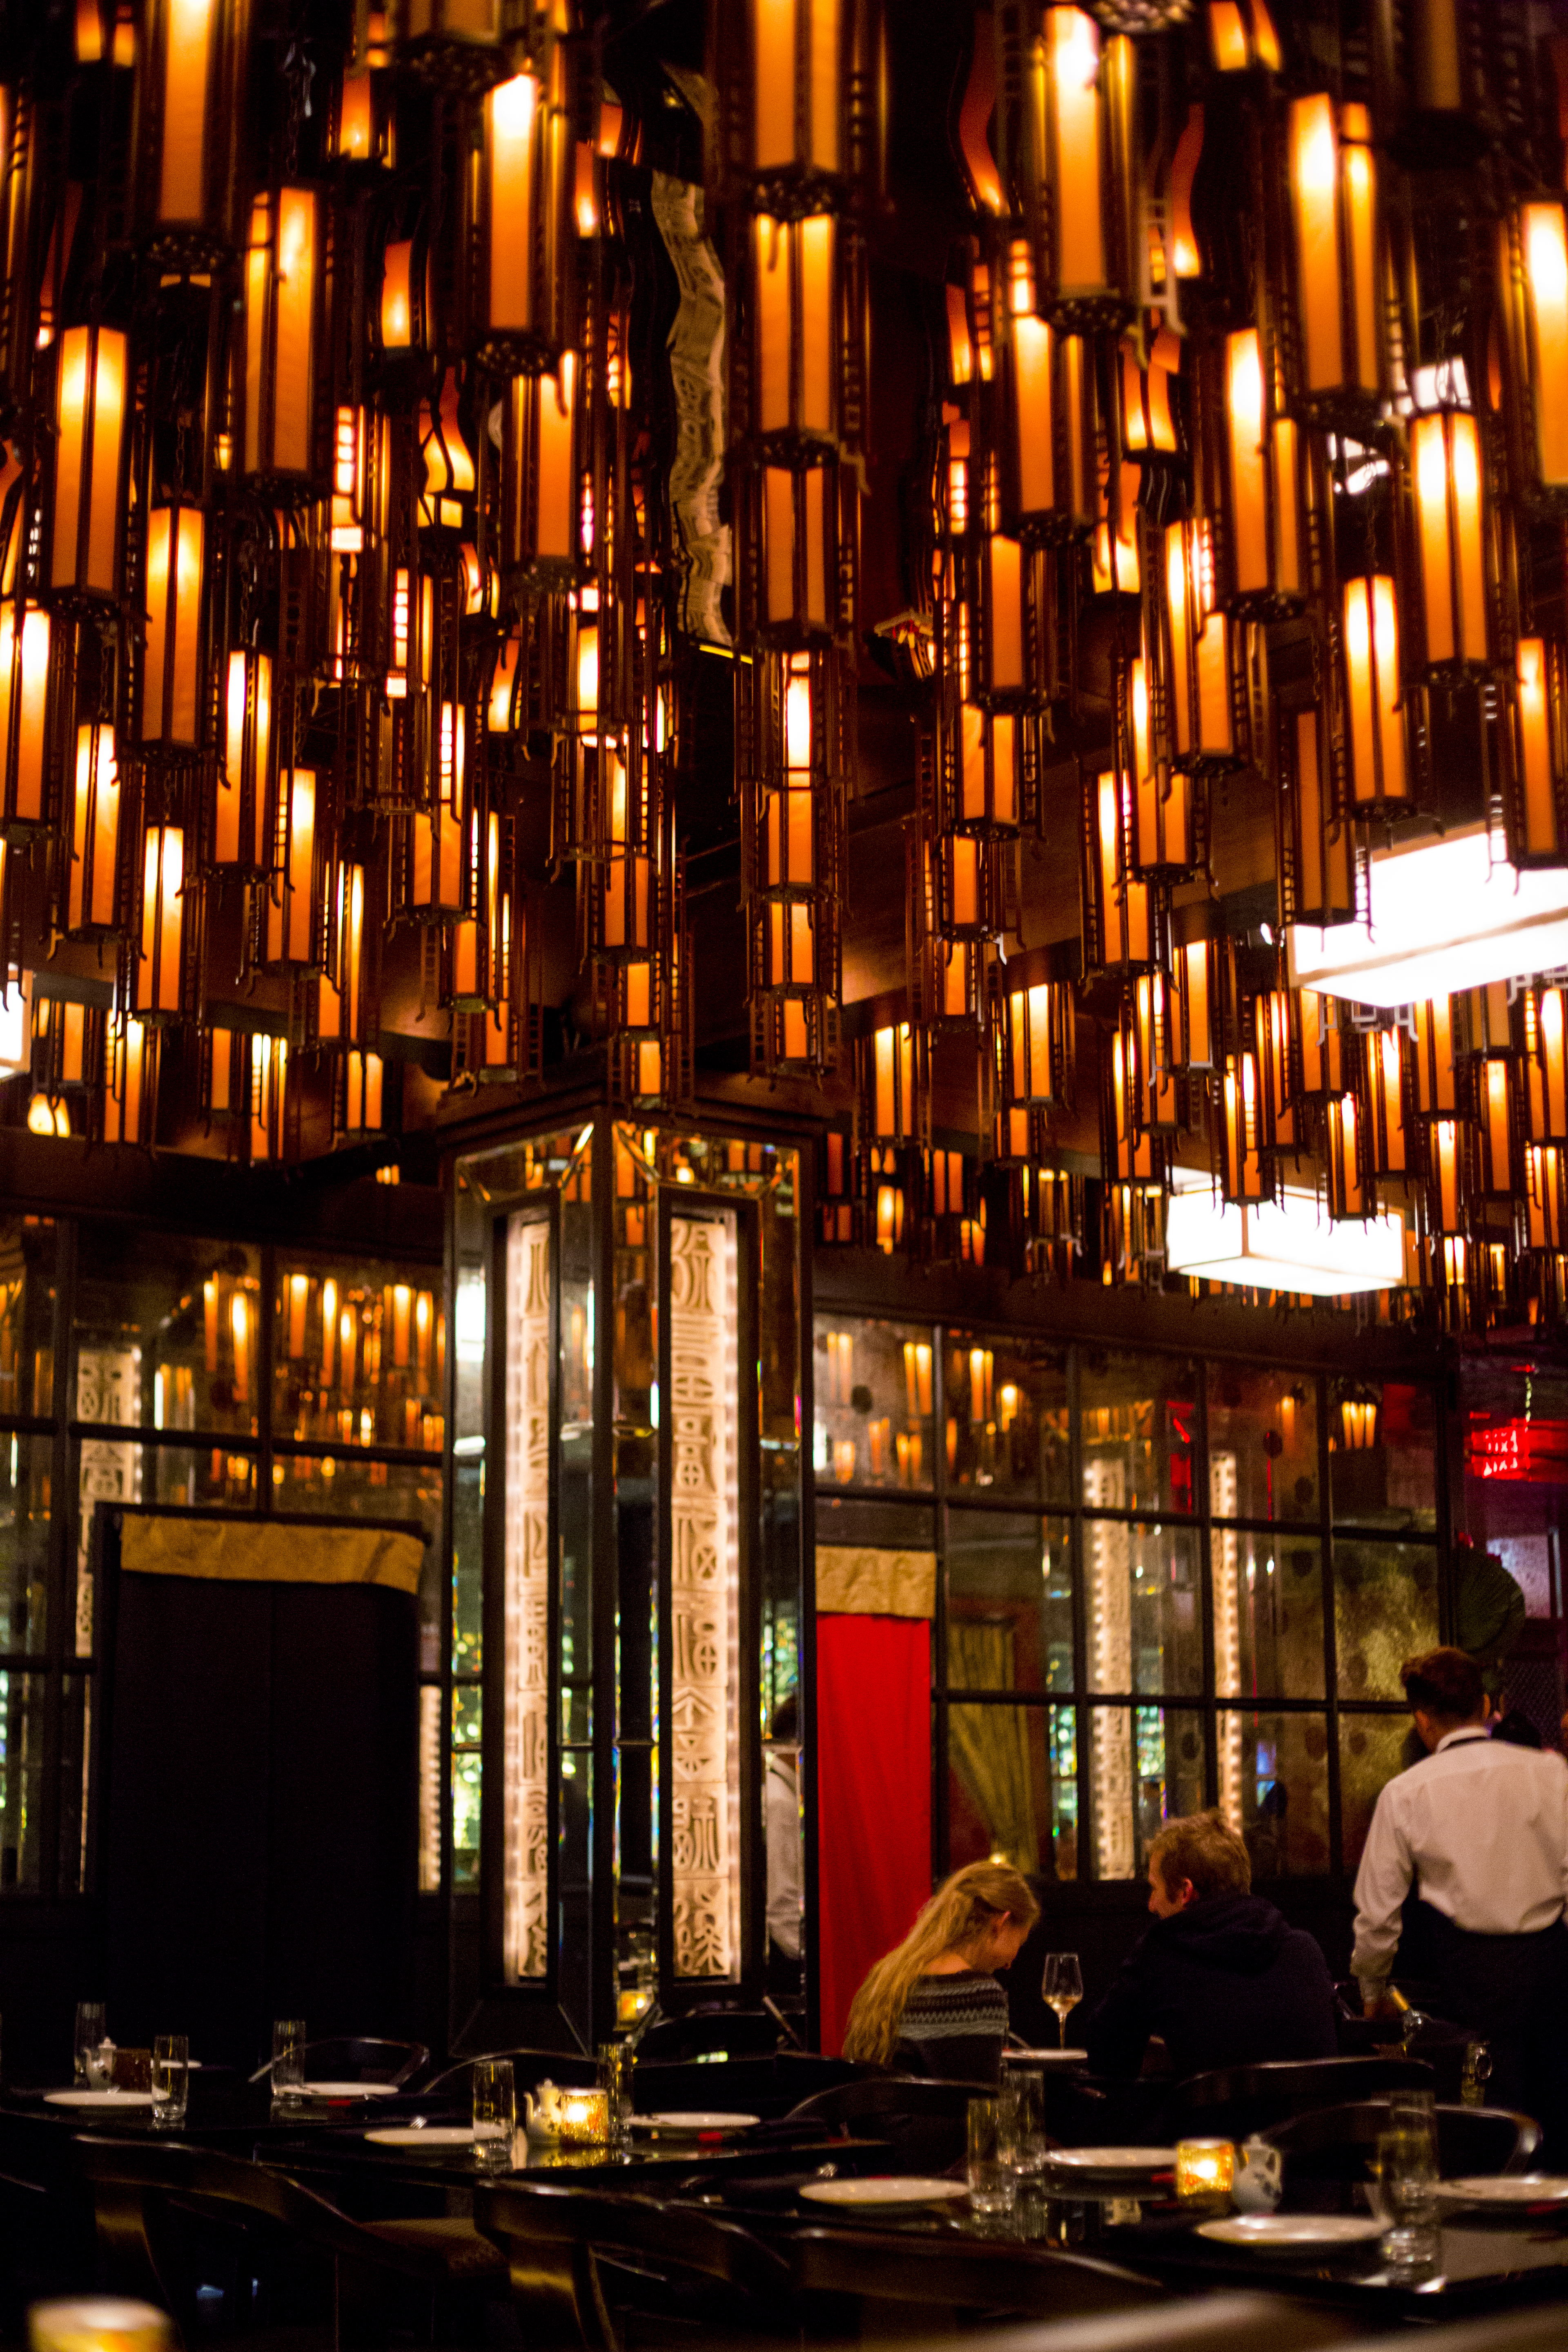 Stunning ceiling covered with lanterns!